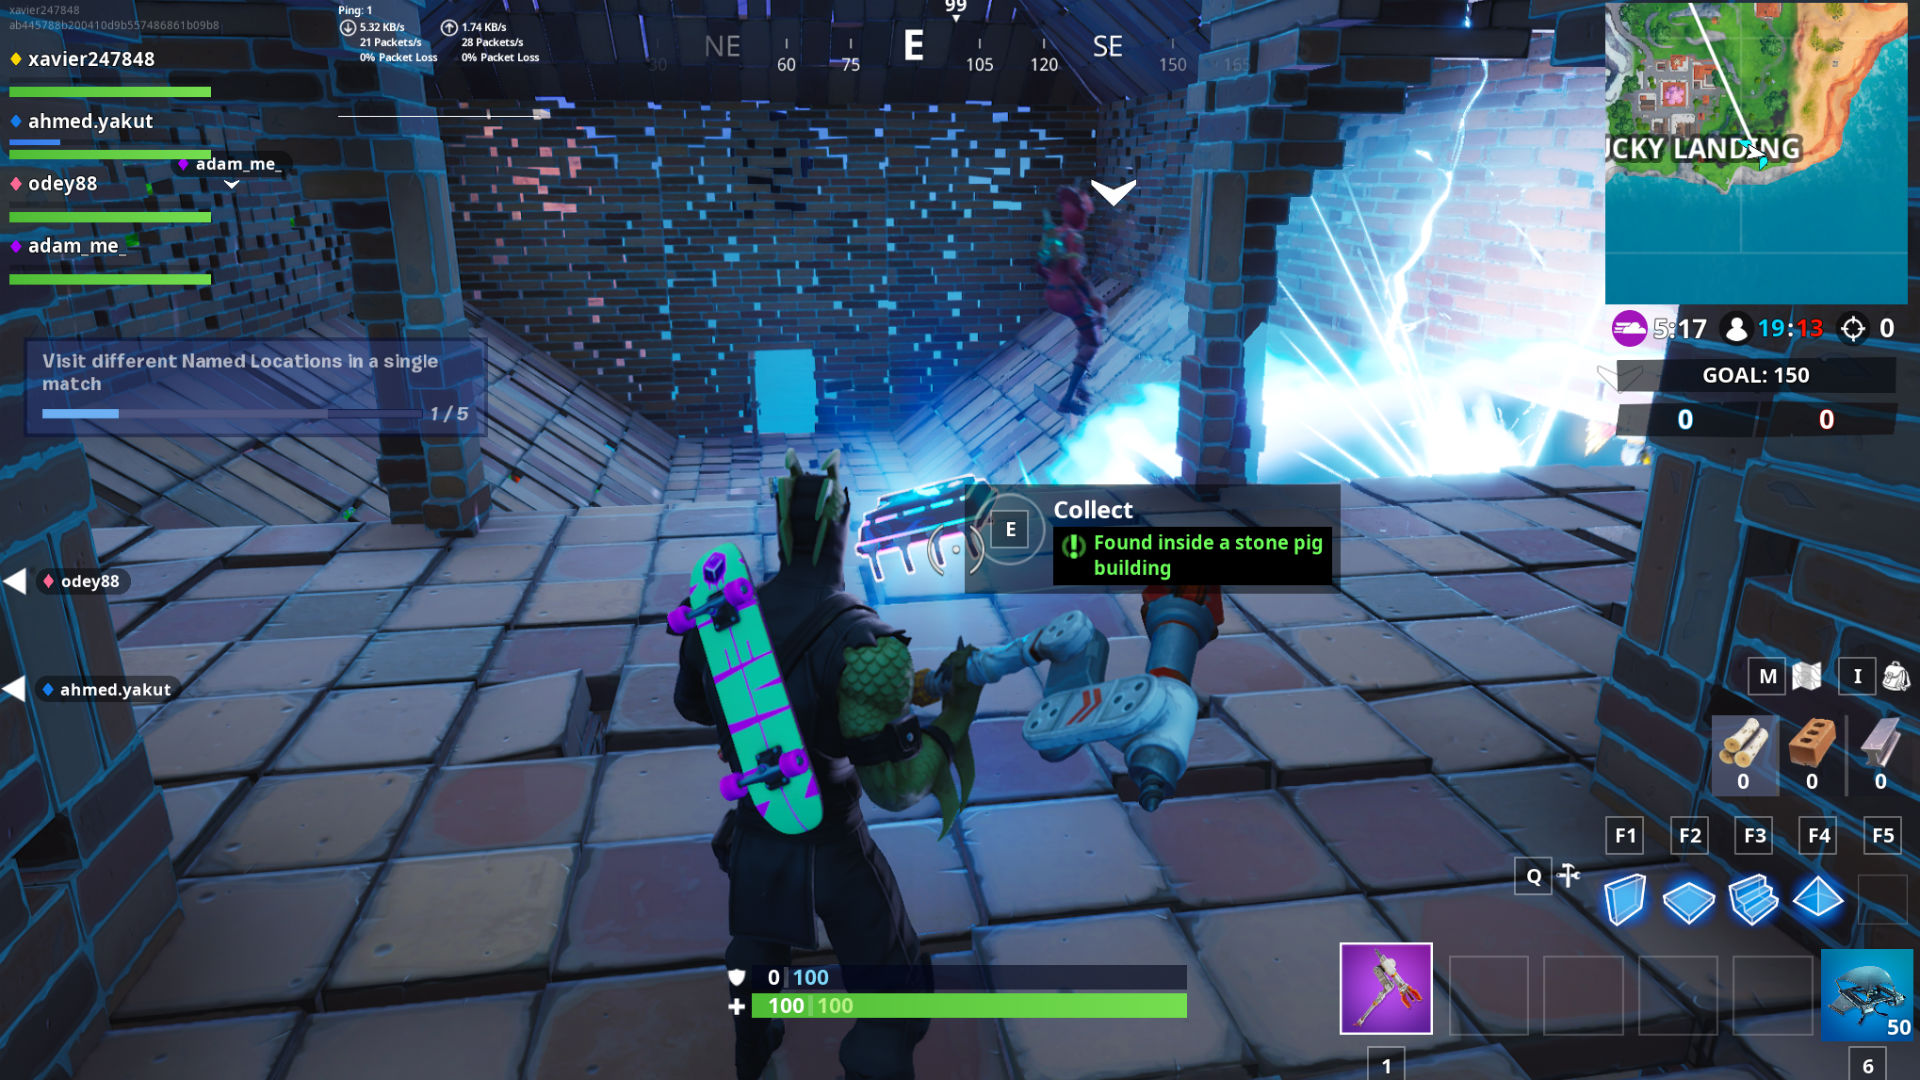 Where To Find Fortbyte 69 Found Inside A Stone Pig: Fortnite Fortbyte 69: Stone Pig Building Location